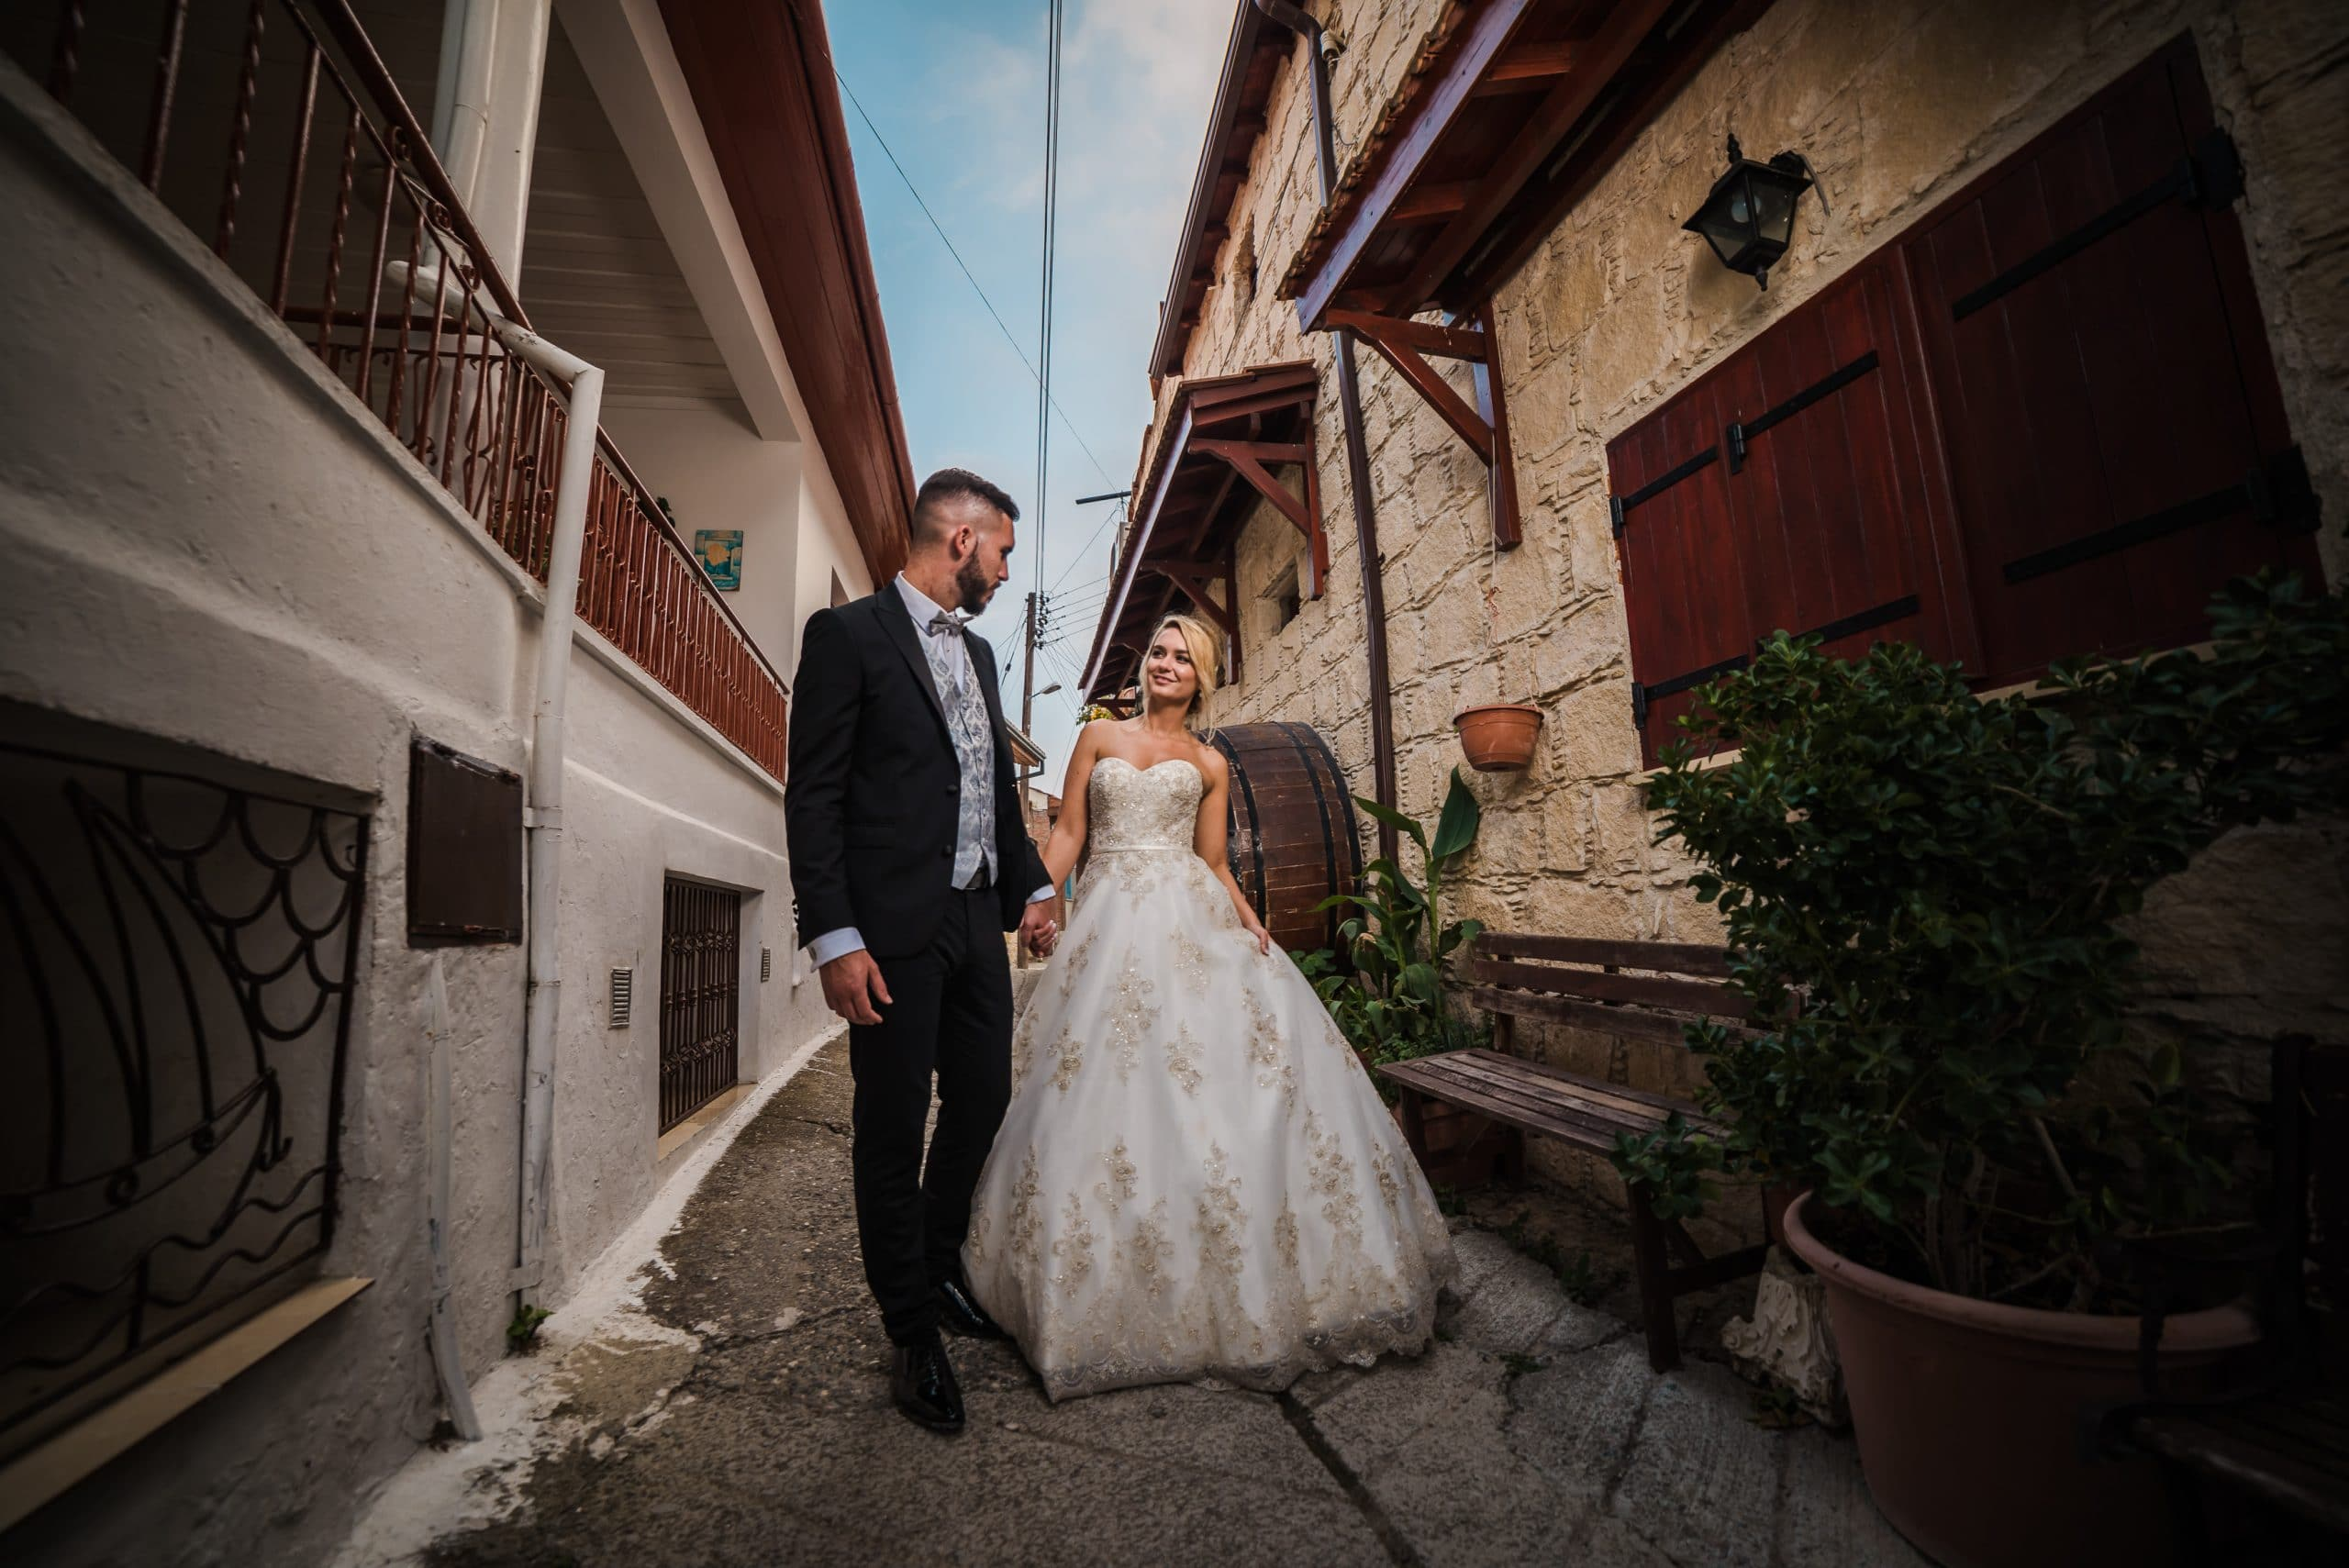 Wedding photography in Troodos with Amy and Matt - By Alexandru Macelaru